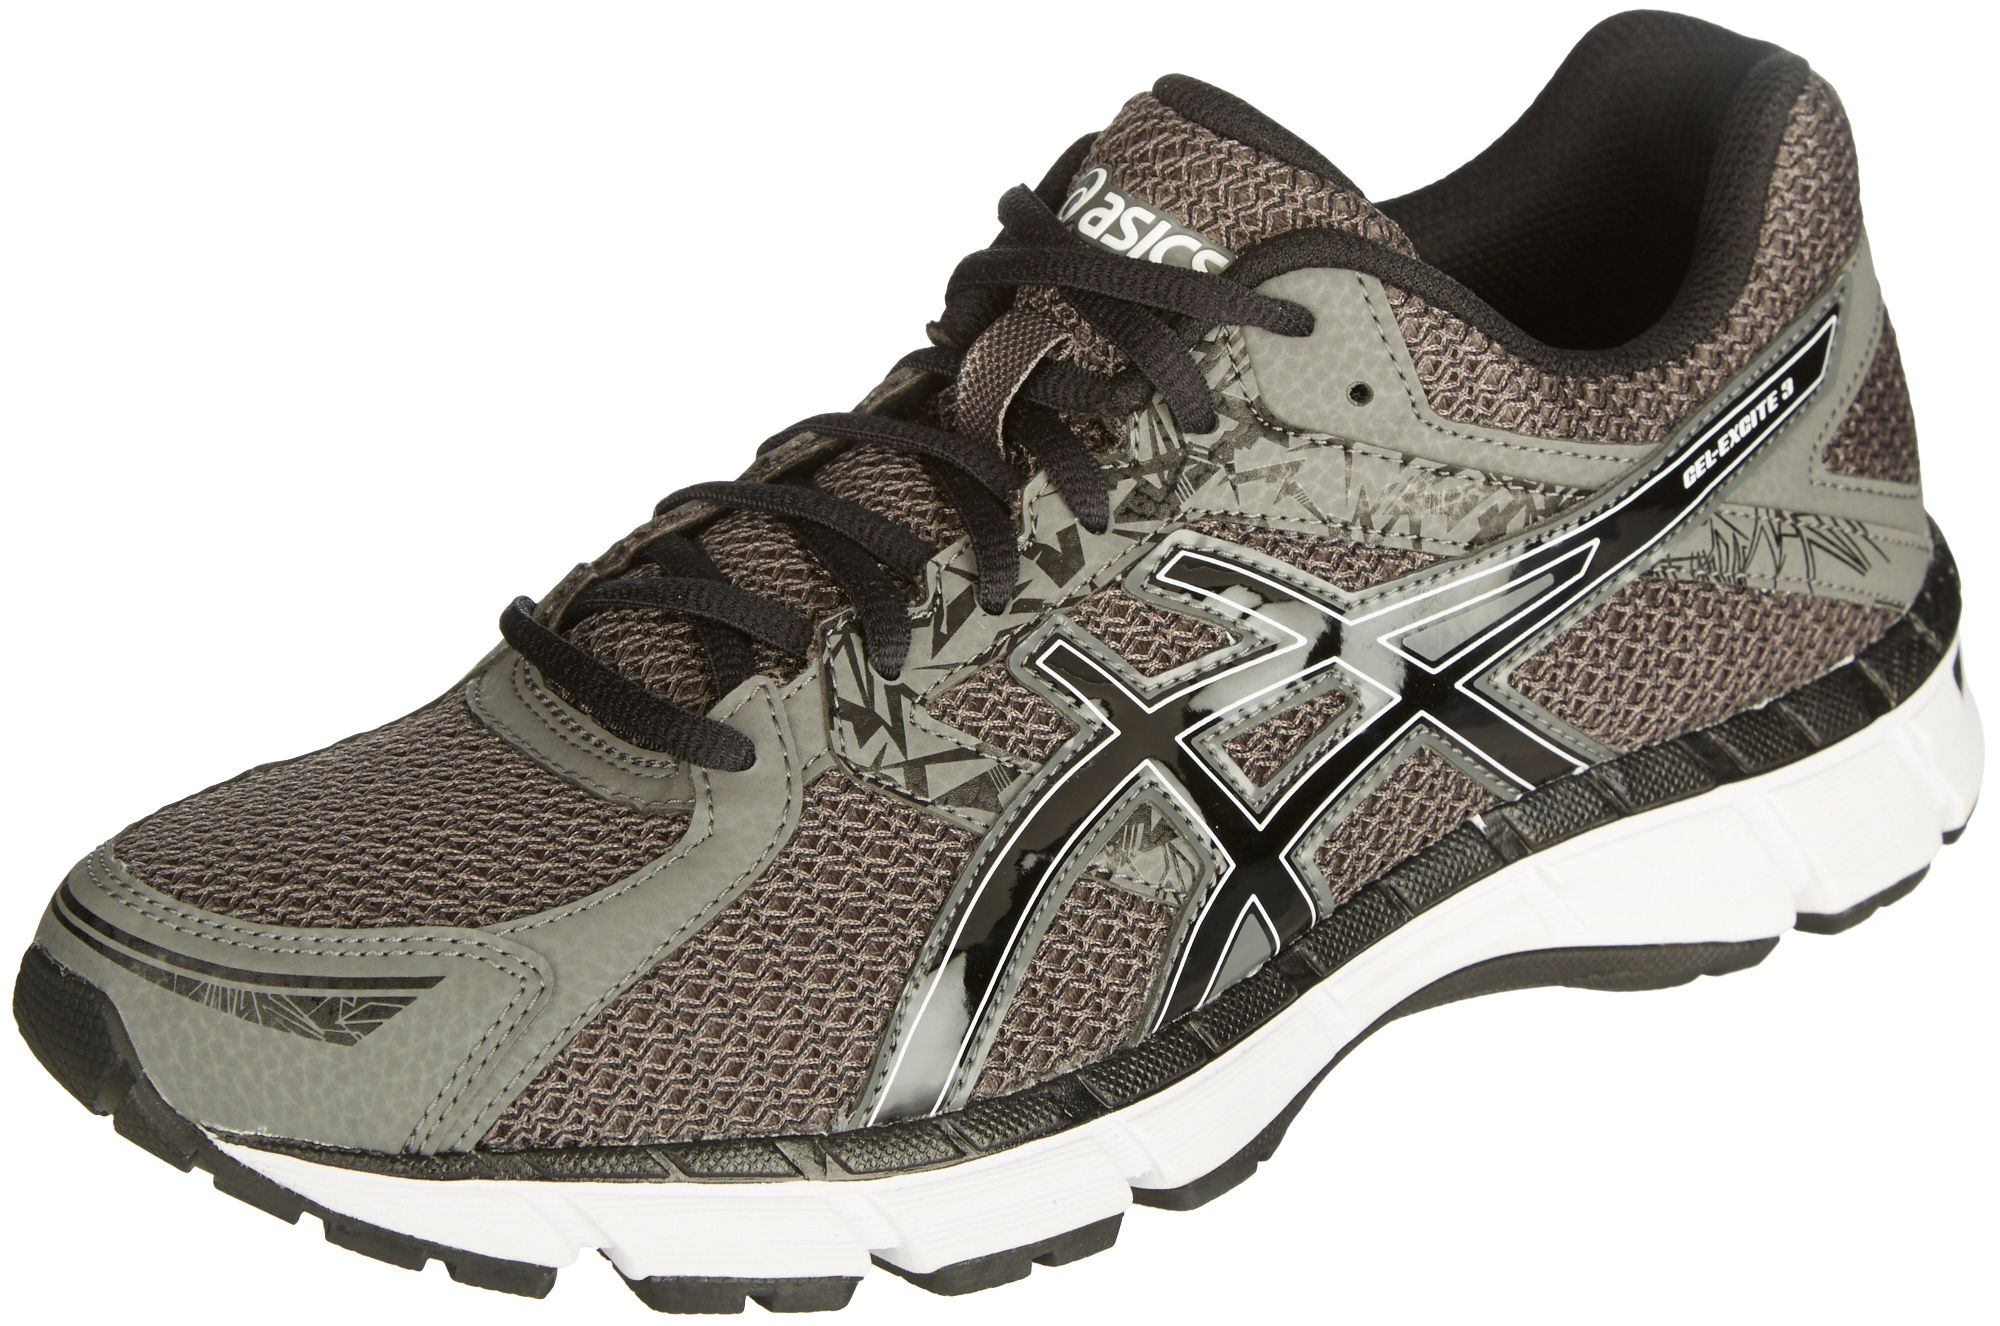 asics gel excite 3 women's review – Walk to Remember